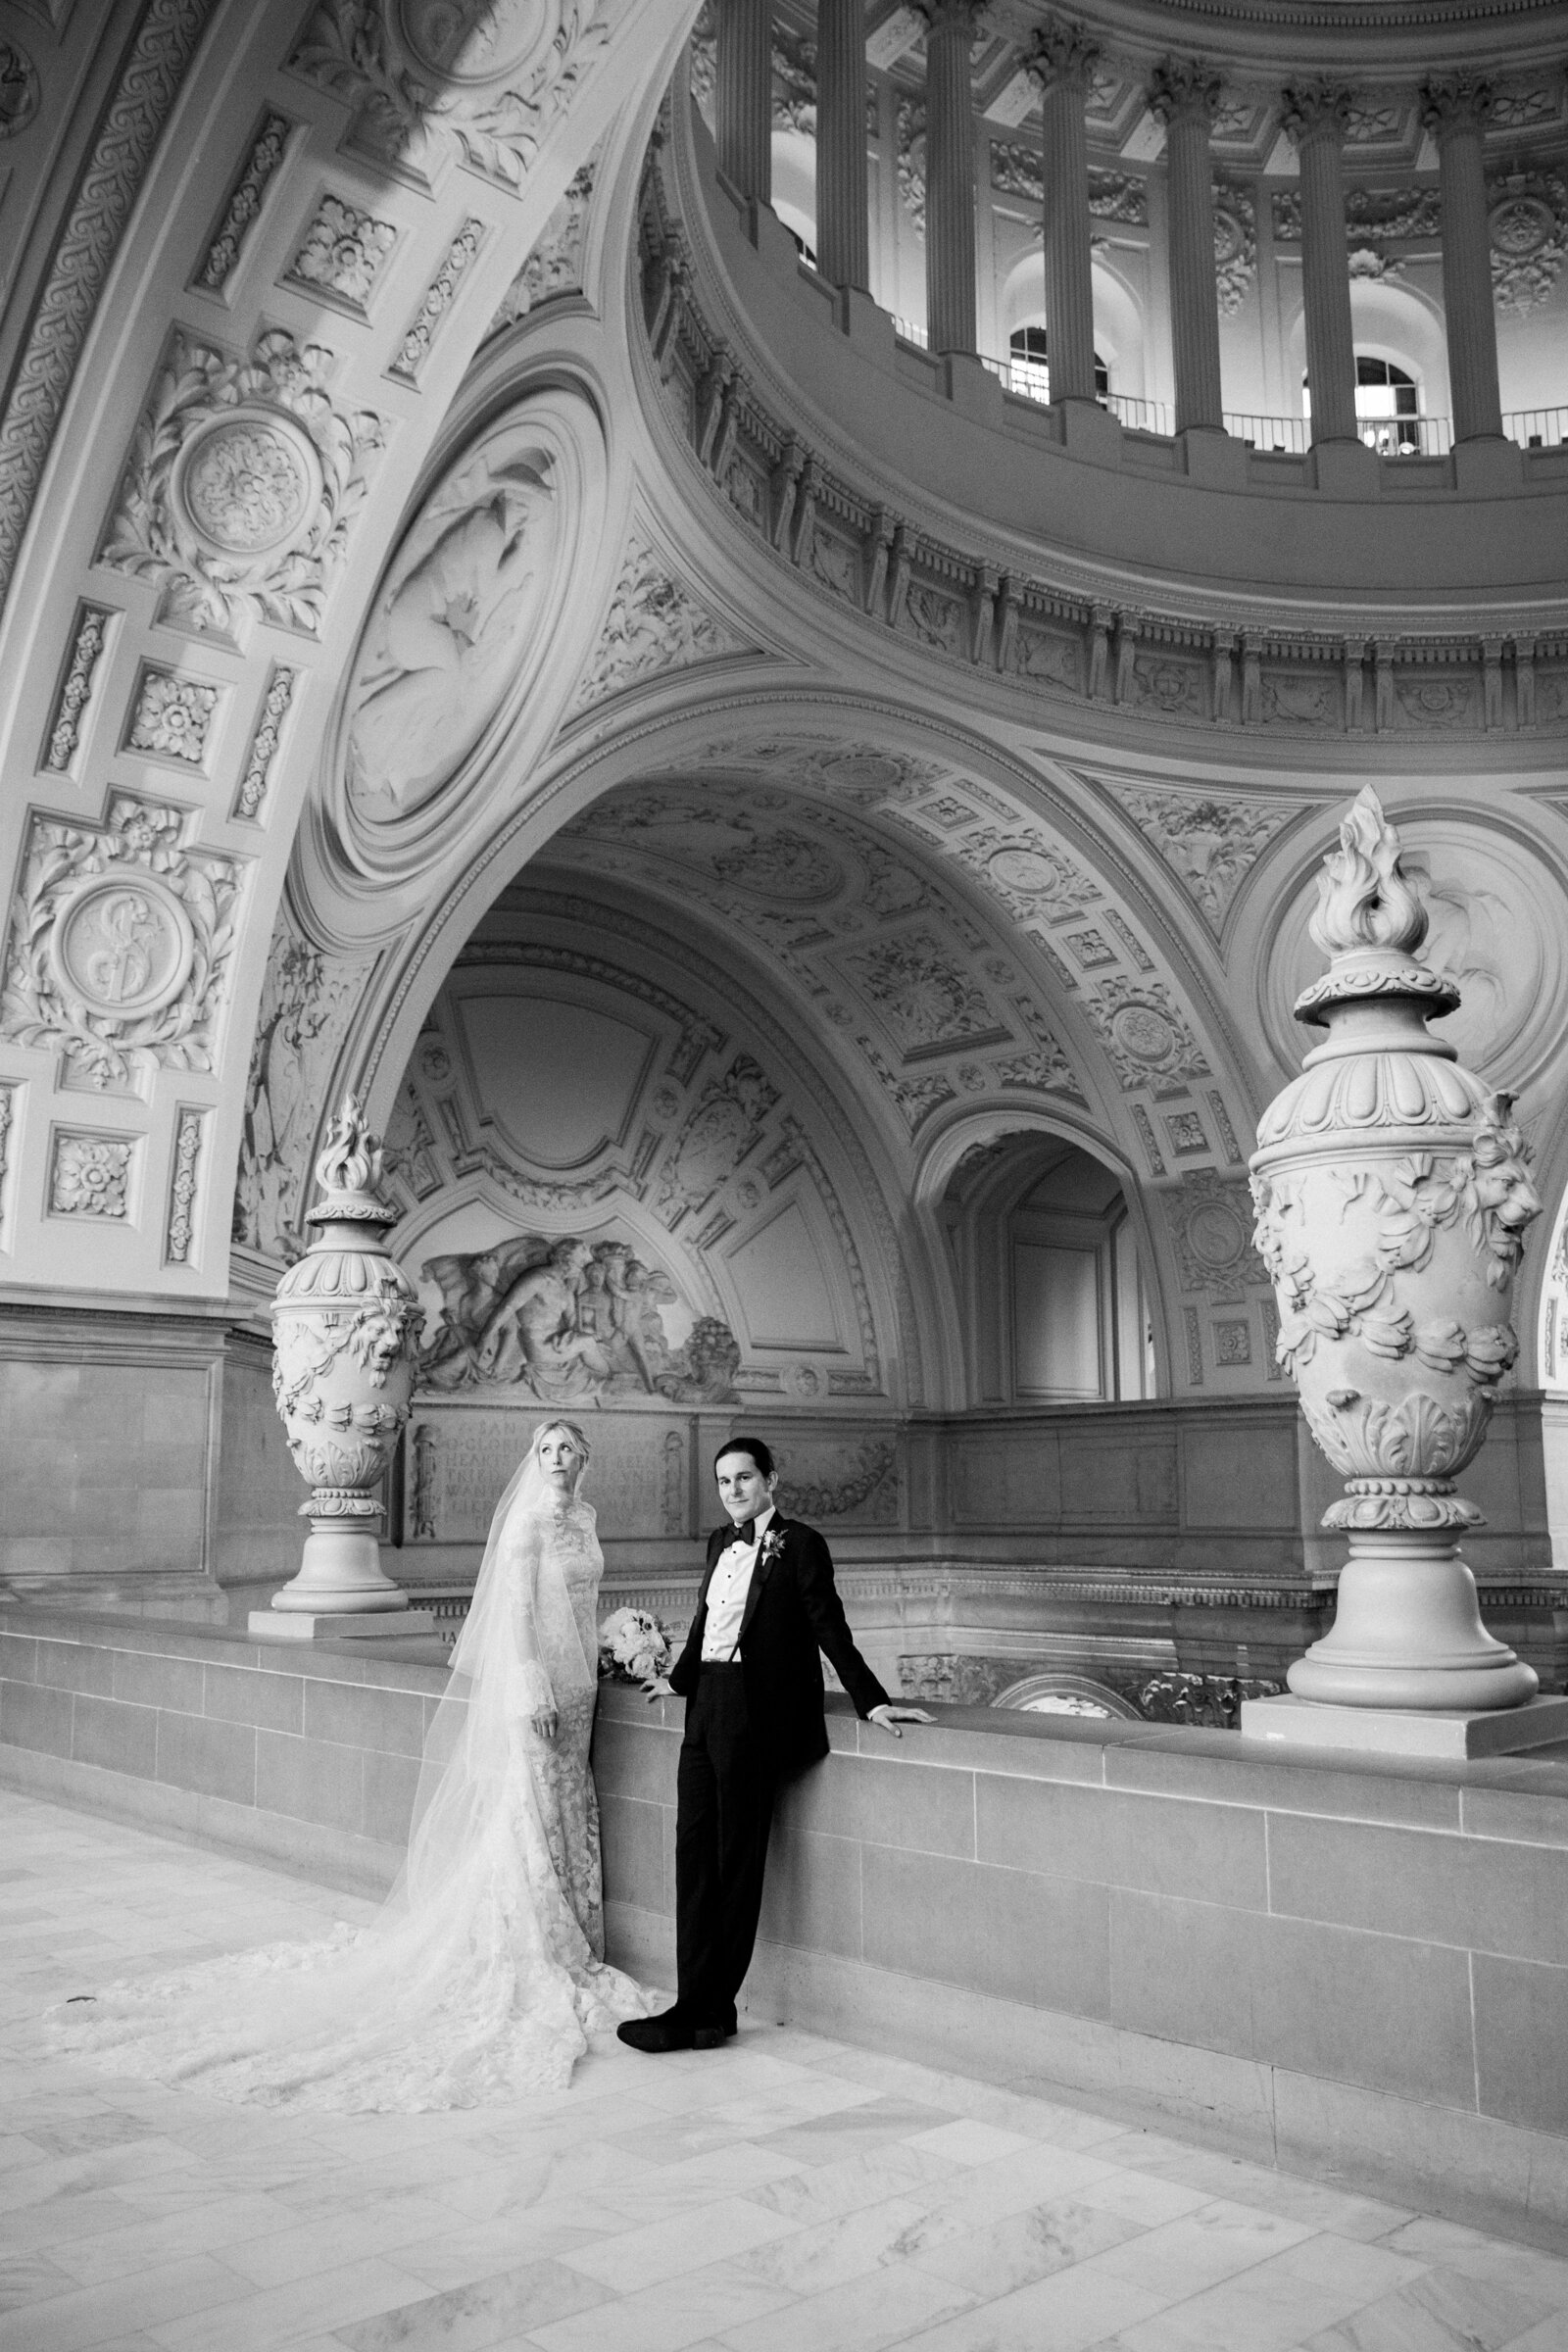 121-larissa-cleveland-wedding_photographer-san-francisco-carmel-napa-california-088-larissa-cleveland-wedding_photographer-san-francisco-carmel-napa-california-087_LC2_9745